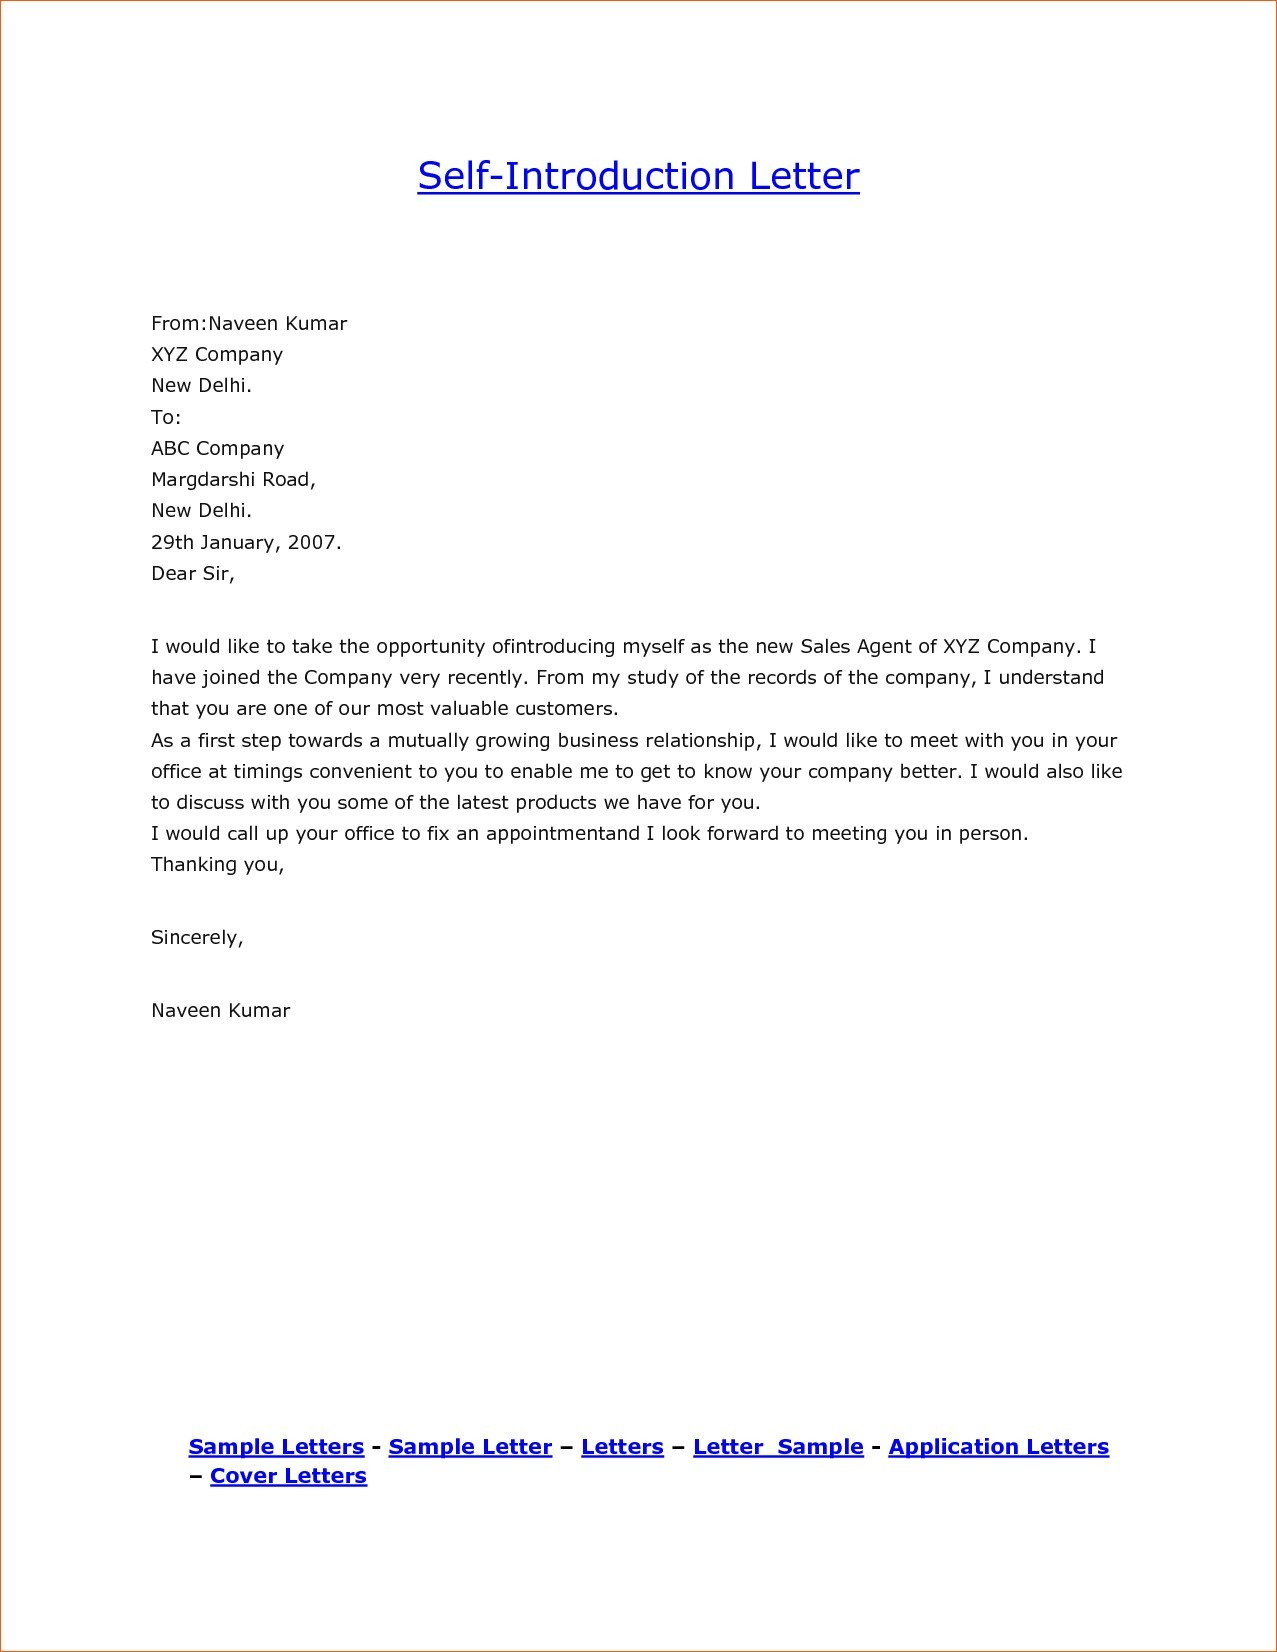 Cleaning business introduction letter template collection letter cleaning business introduction letter template introduction letter format for trading pany new samples business friedricerecipe Images